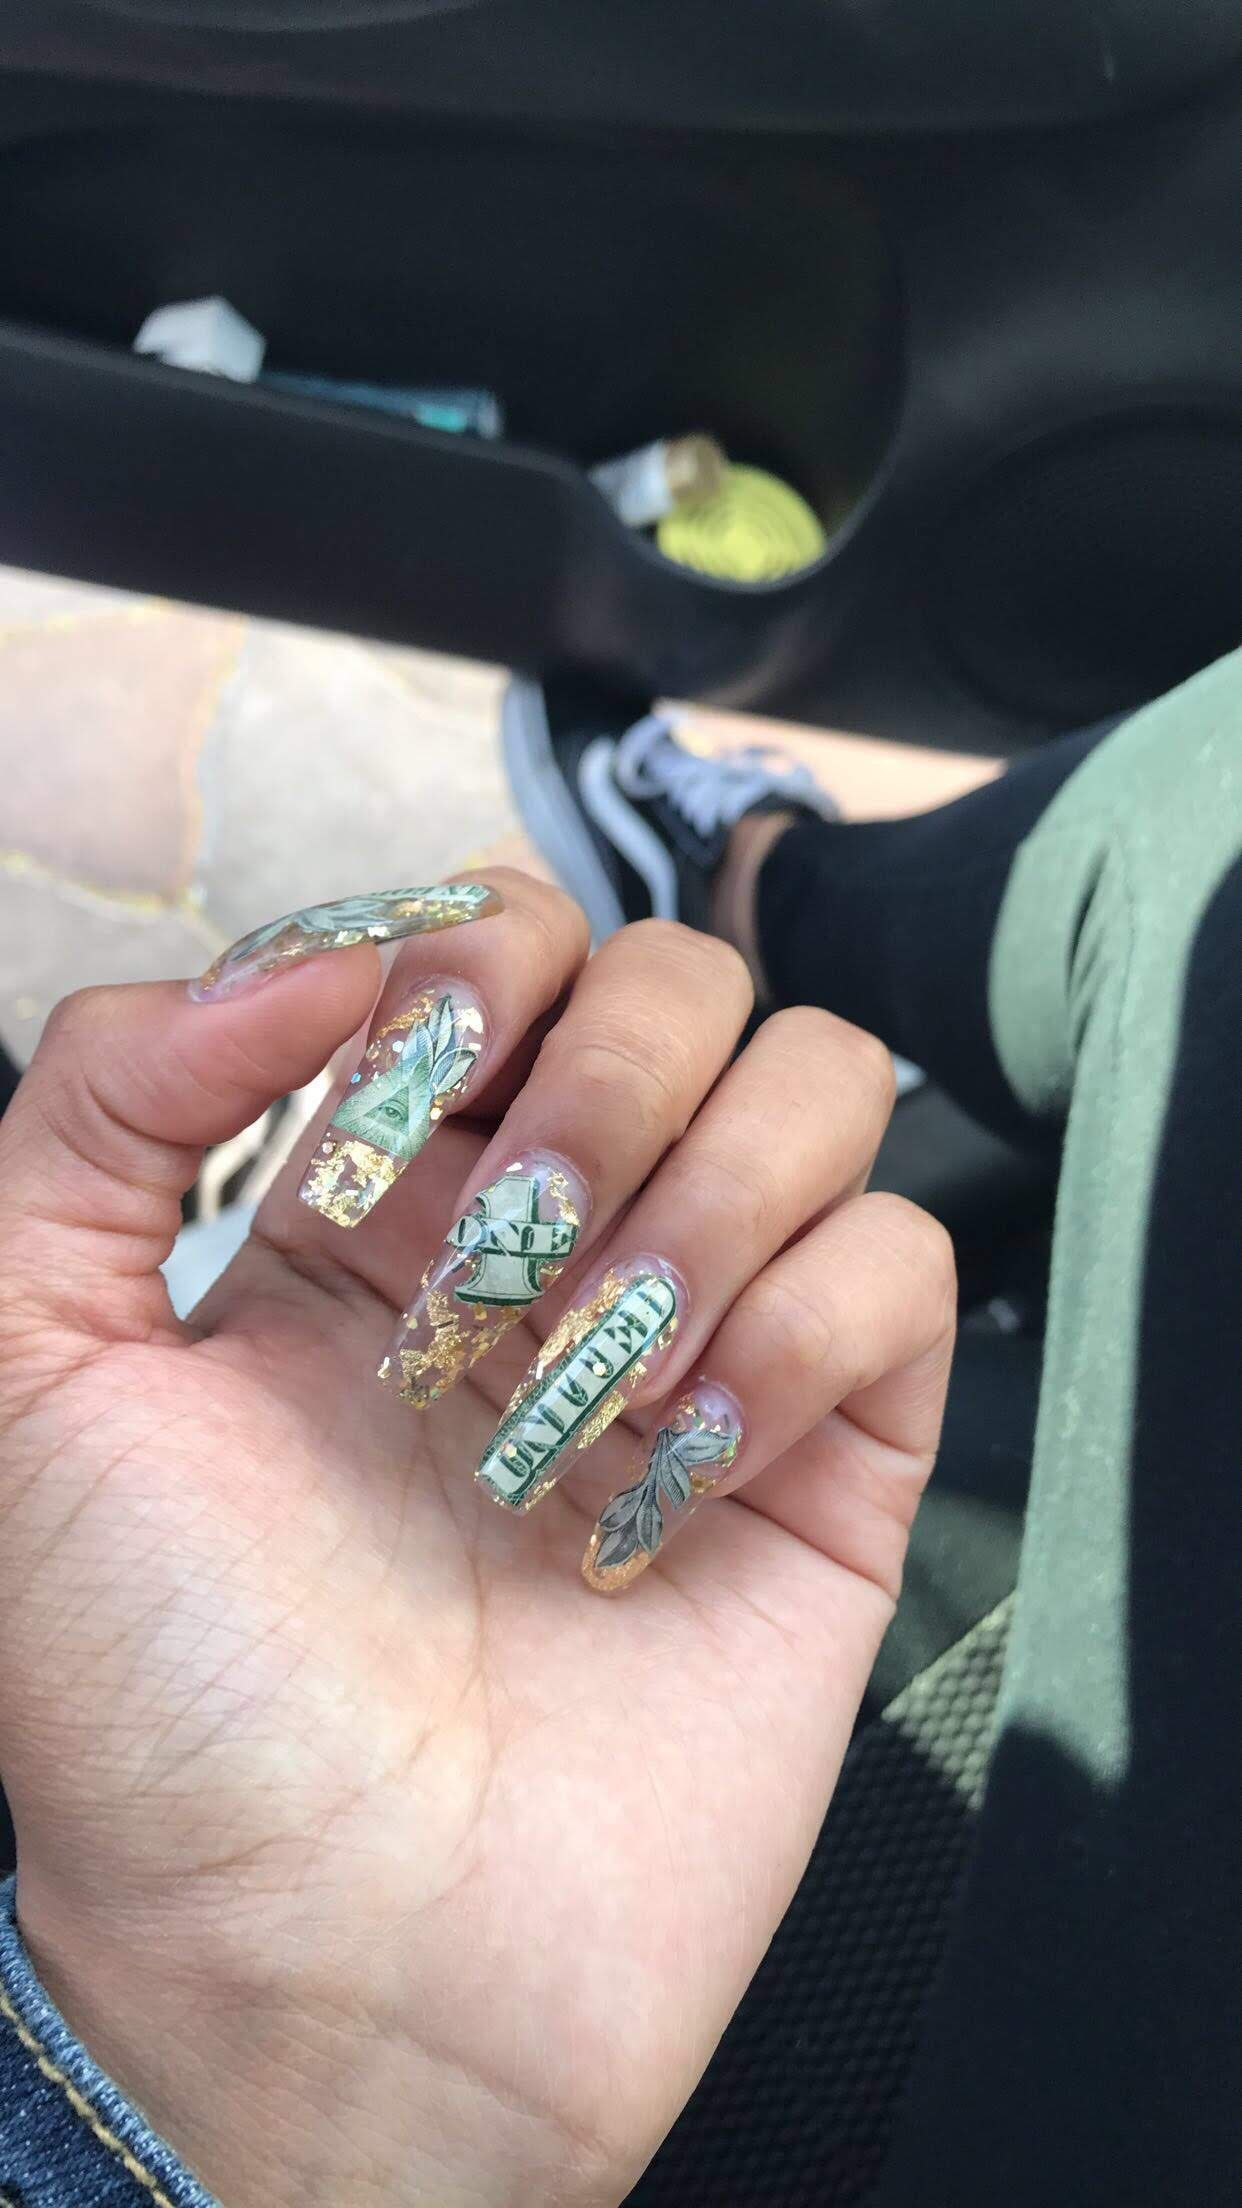 Money Acrylic Nails Bling Nails Coffin Nails Designs Birthday Nails